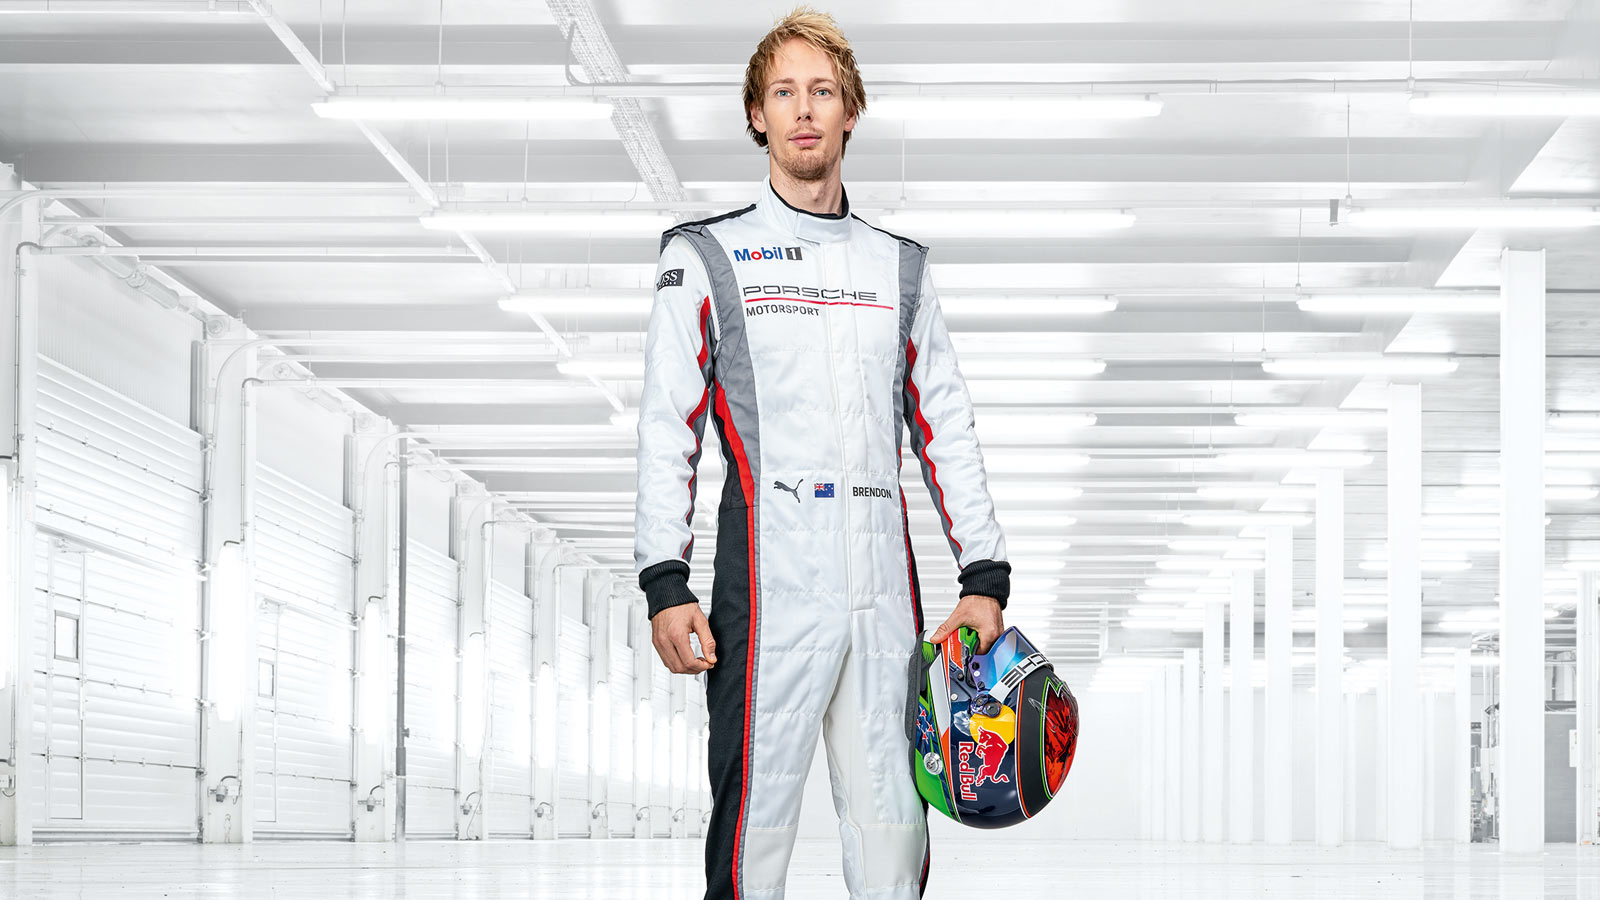 Porsche - Brendon Hartley (Pilote d'essais officiel) NZL